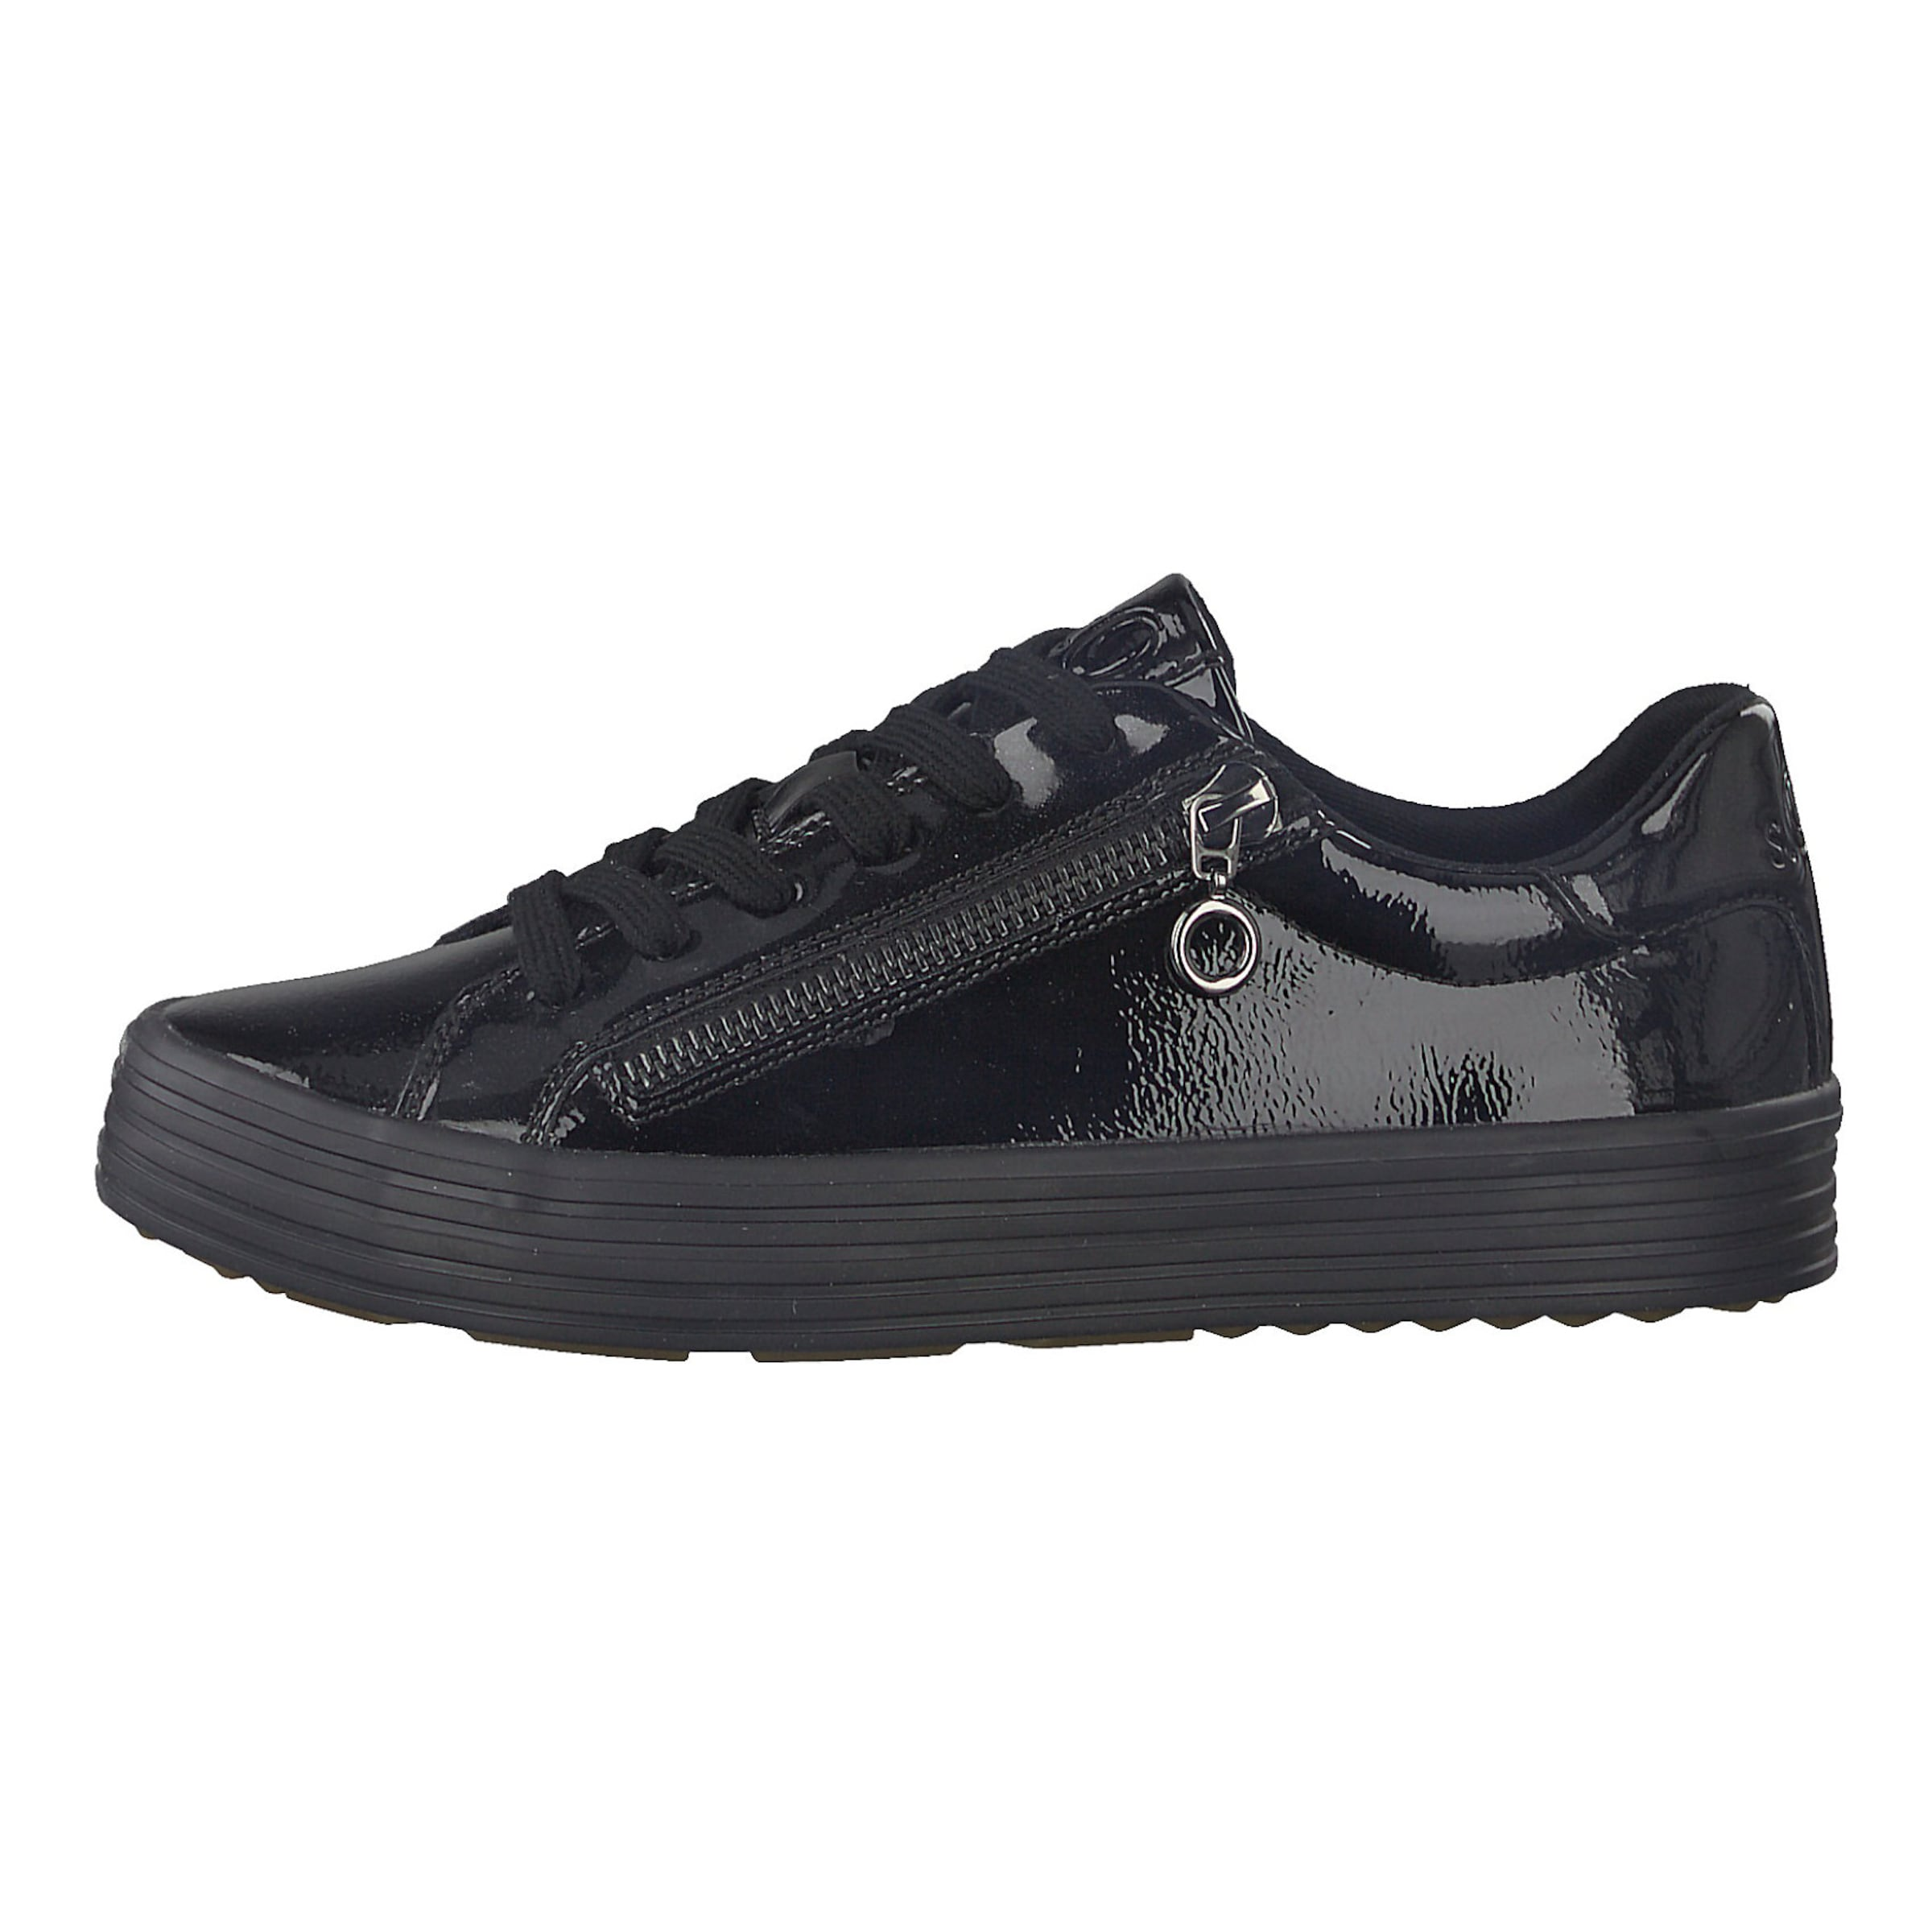 oliver Sneakers Red Label In S Low Schwarz xeCBoWrd